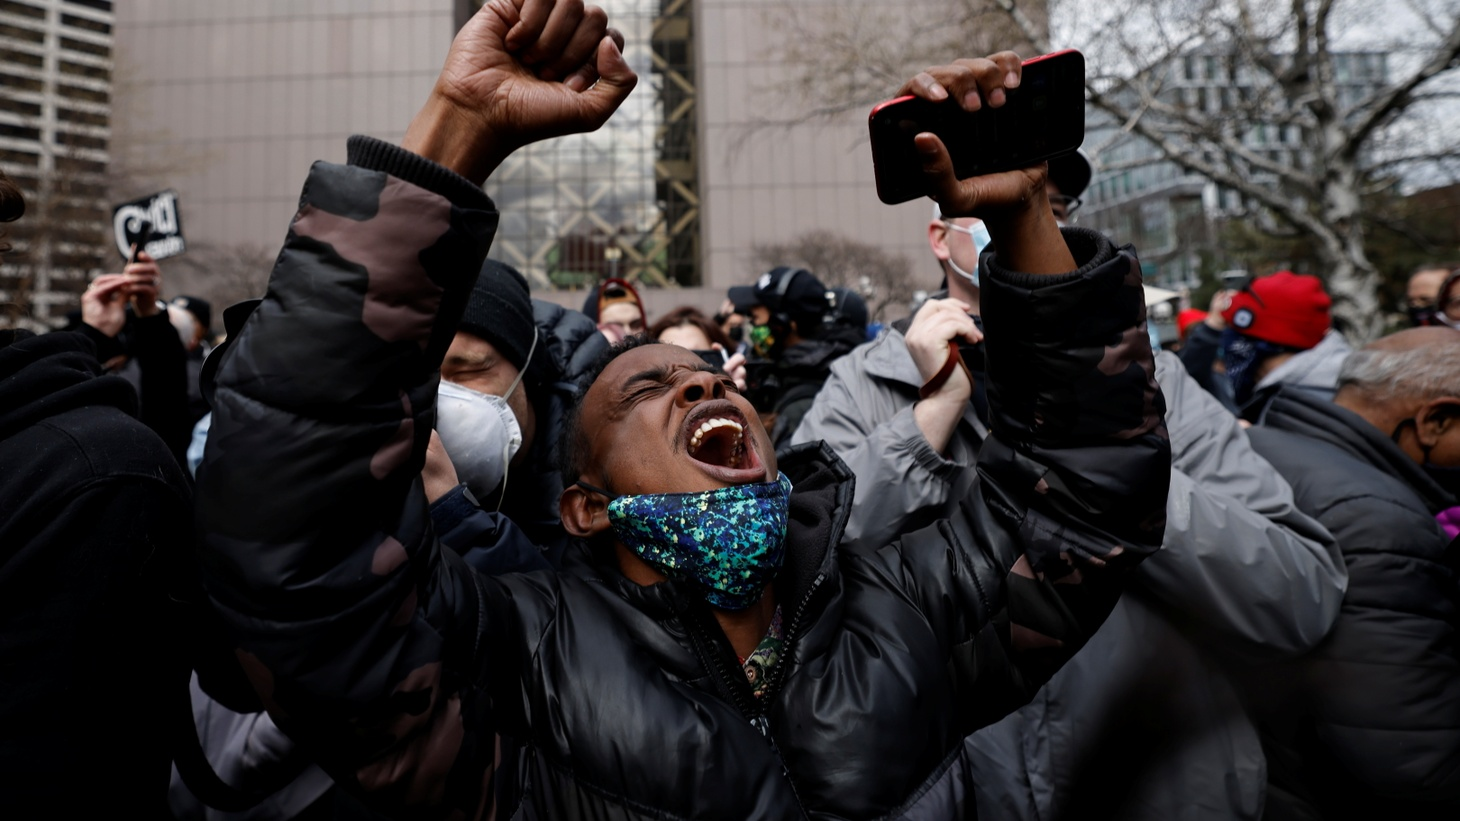 A person reacts after the verdict in the trial of former Minneapolis police officer Derek Chauvin, in the death of George Floyd, in front of Hennepin County Government Center, in Minneapolis, Minnesota, U.S., April 20, 2021.